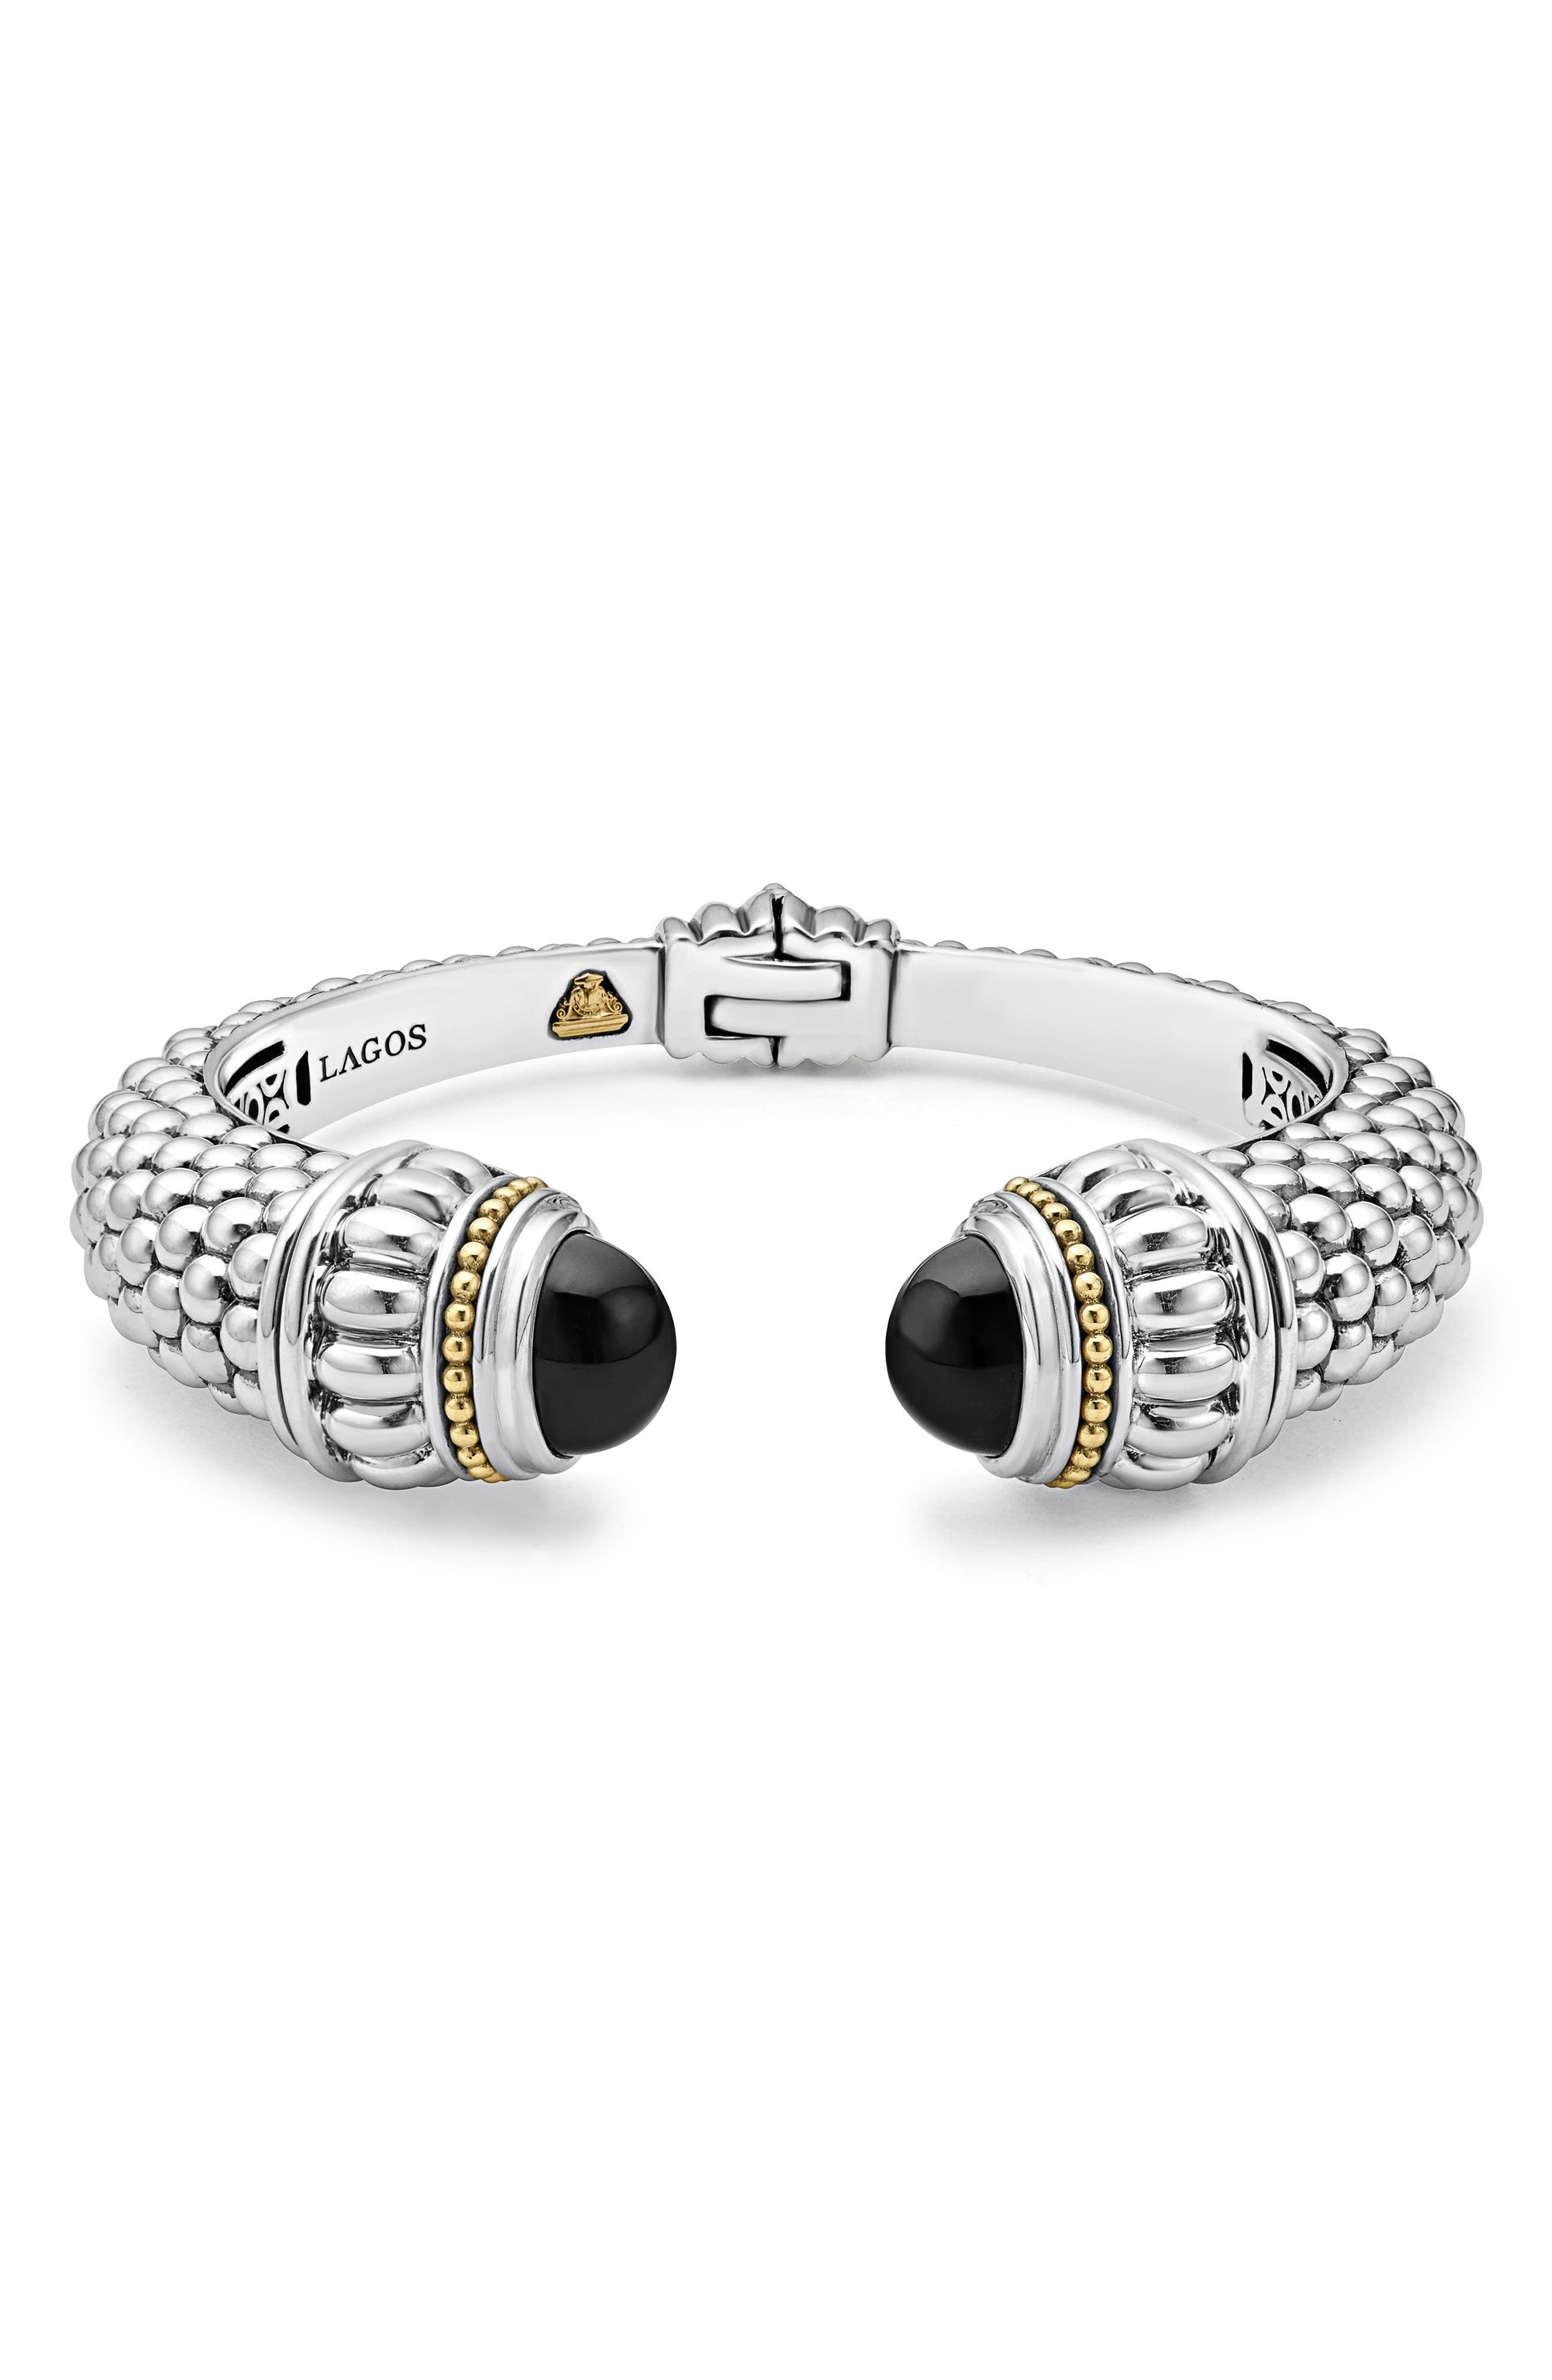 Caviar Color Hinge Wrist Cuff,                         Main,                         color, Black Onyx